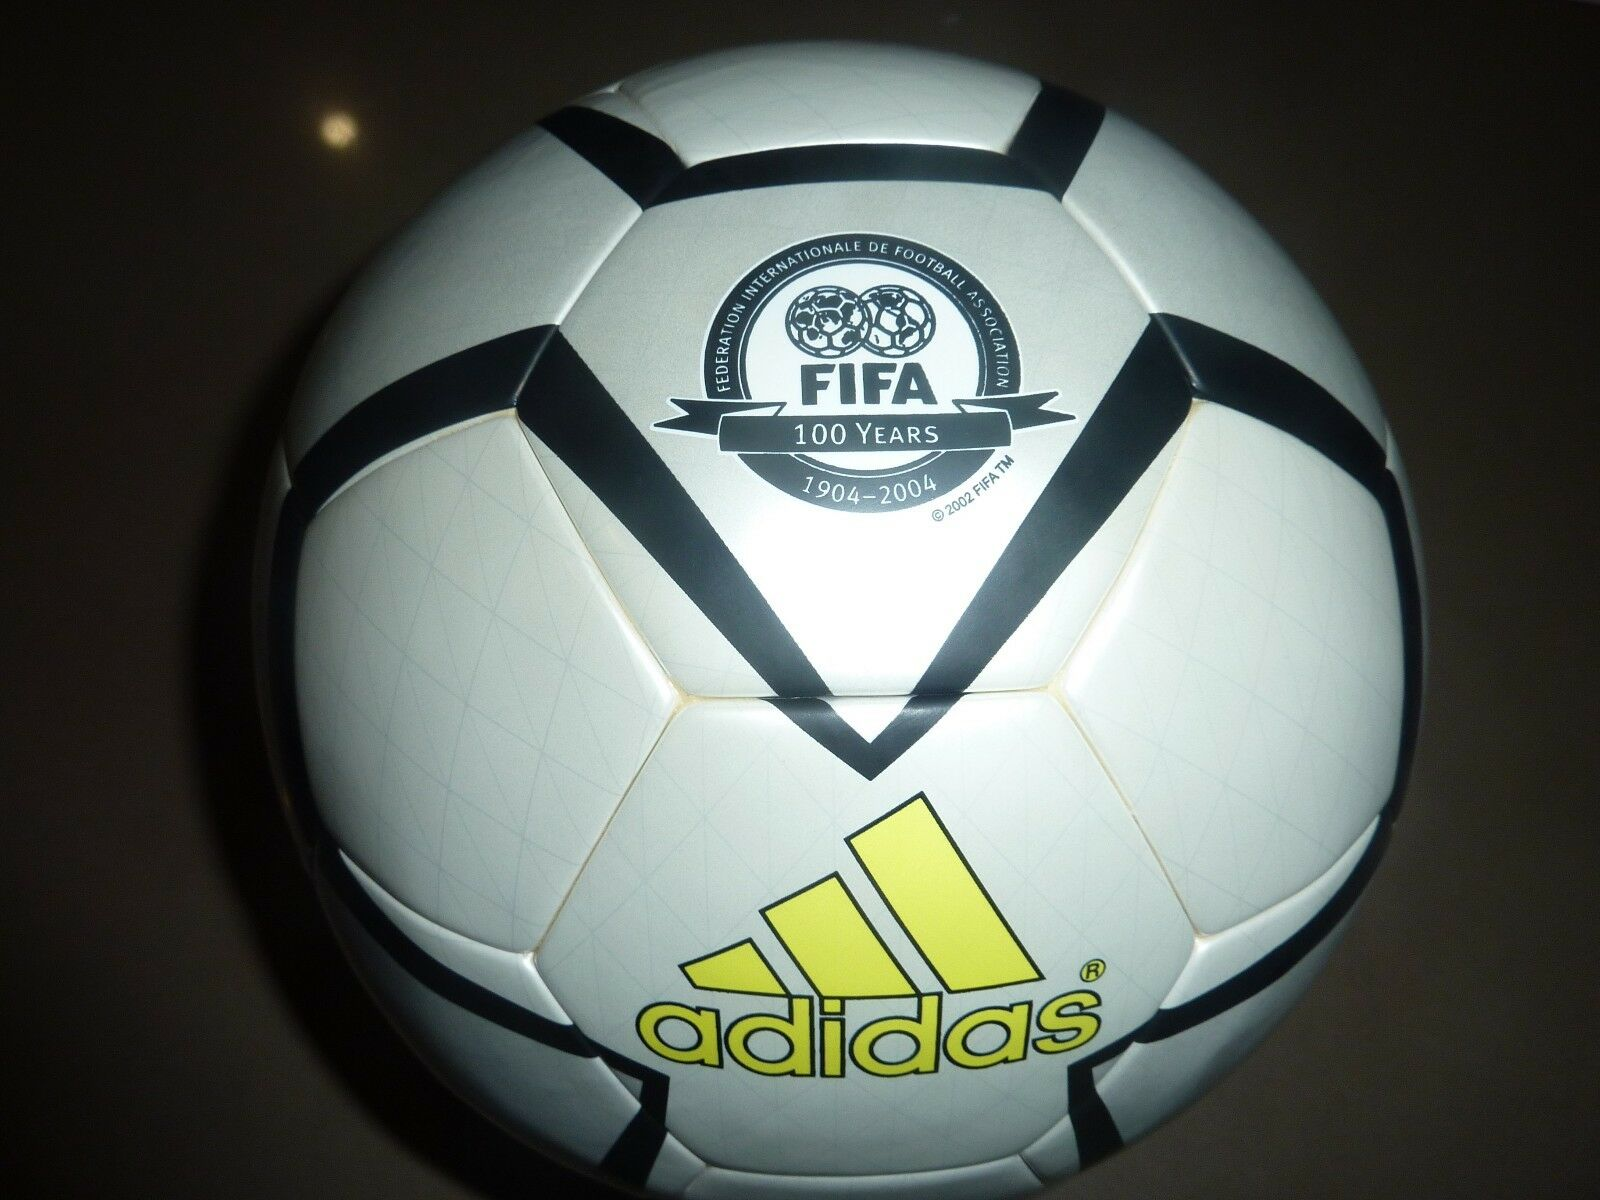 ADIDAS PELIAS 100 YEARS OFFICIAL MATCH BALL SOCCER FOOTBALL FIFA SPECIAL EDITION